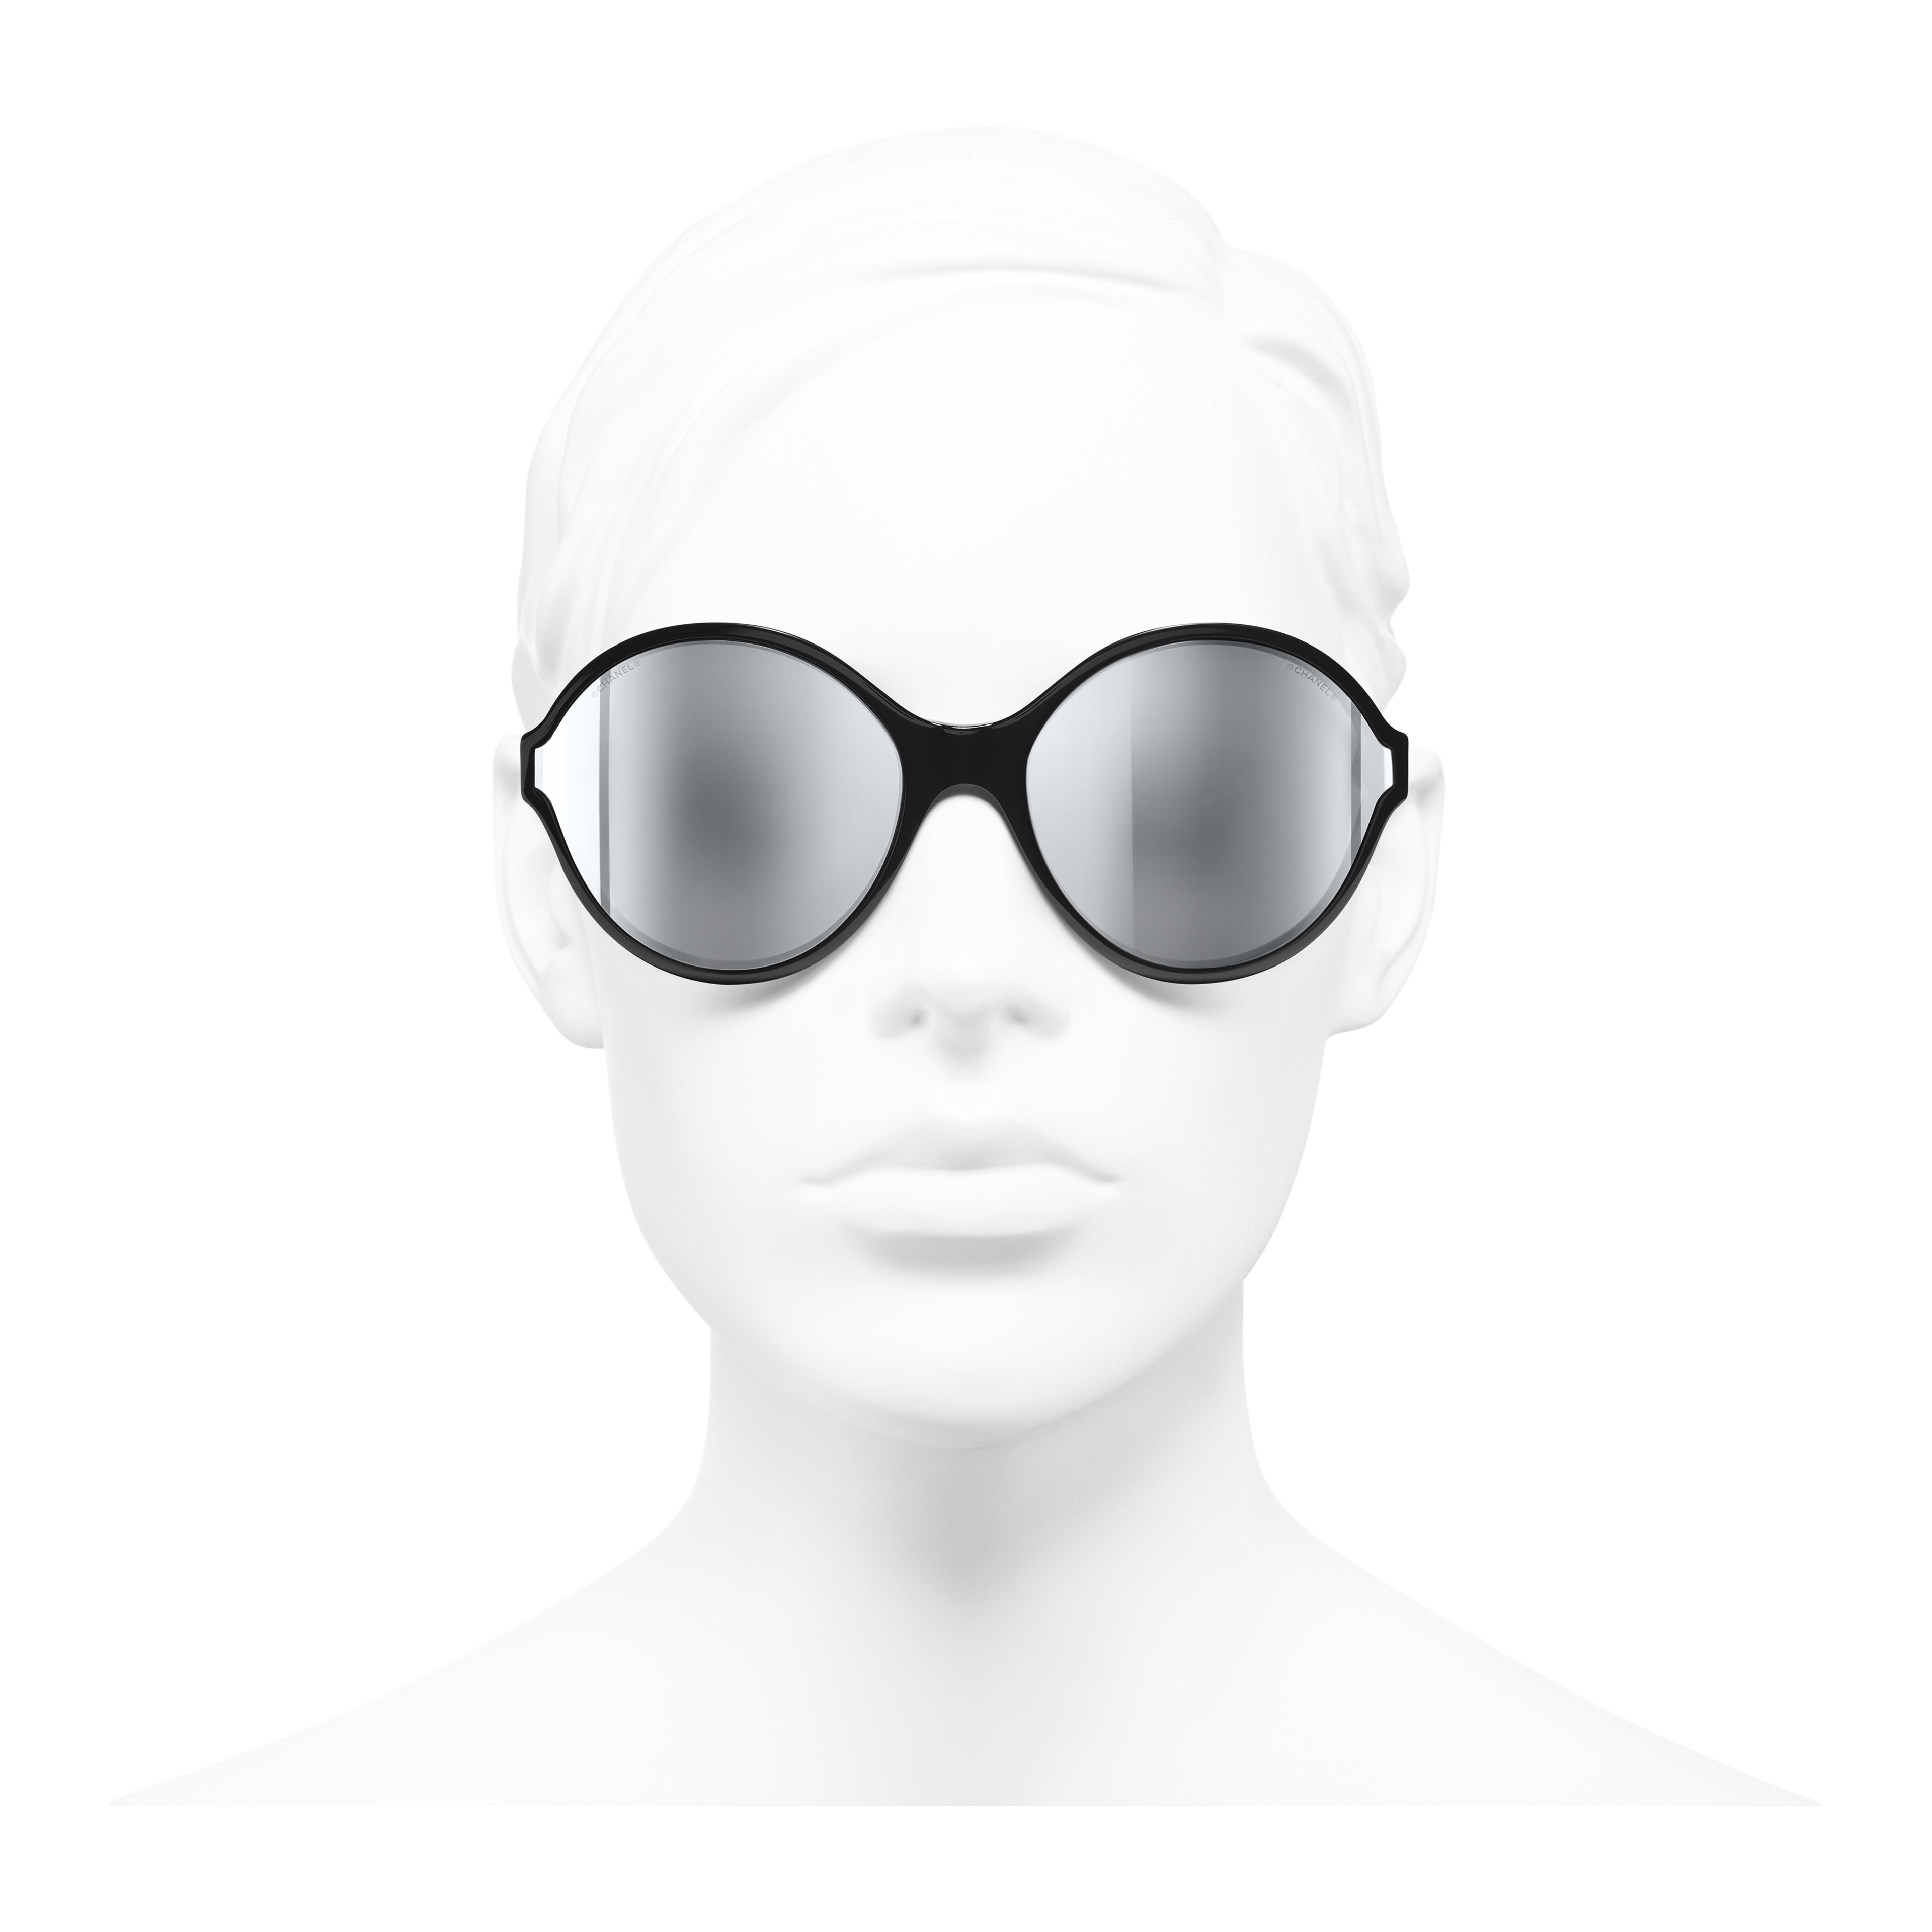 Round Sunglasses Acetate Black -                                                                     view 2 - see full sized version